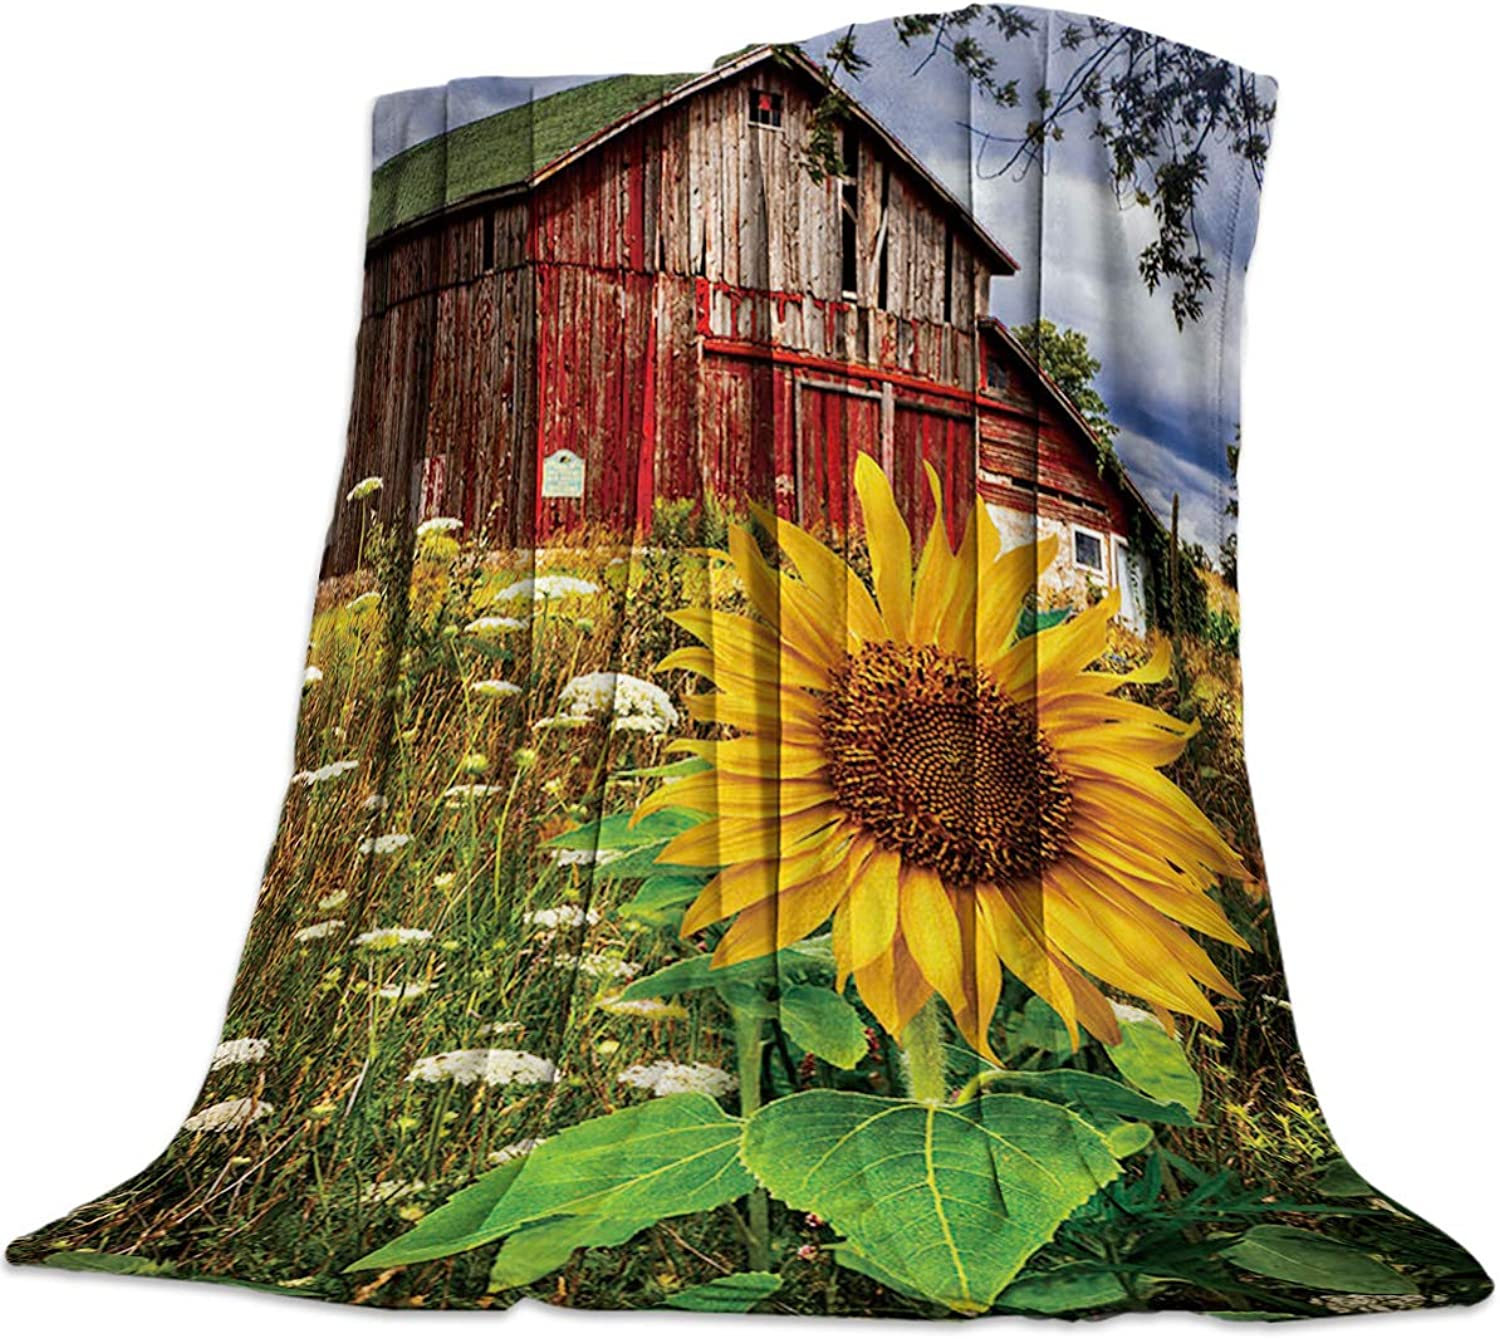 Luck Sky Weighted Blanket Country Blankets, American Farm House Sunflower Garden Flannel Blanket for Kids Baby Men Women Home Office Cars, 50 x60